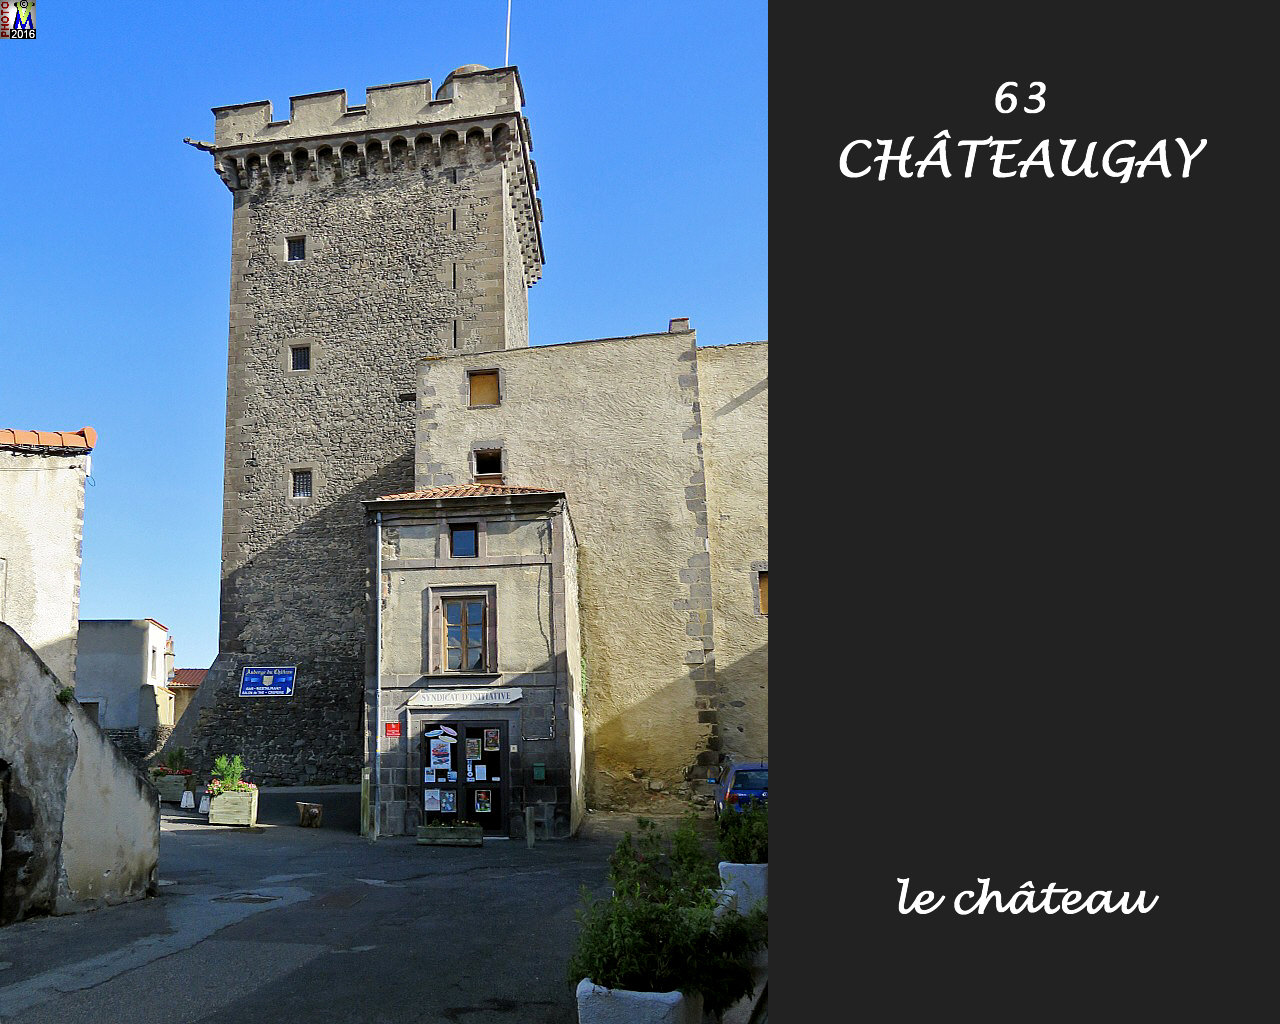 63CHATEAUGAY_chateau_106.jpg